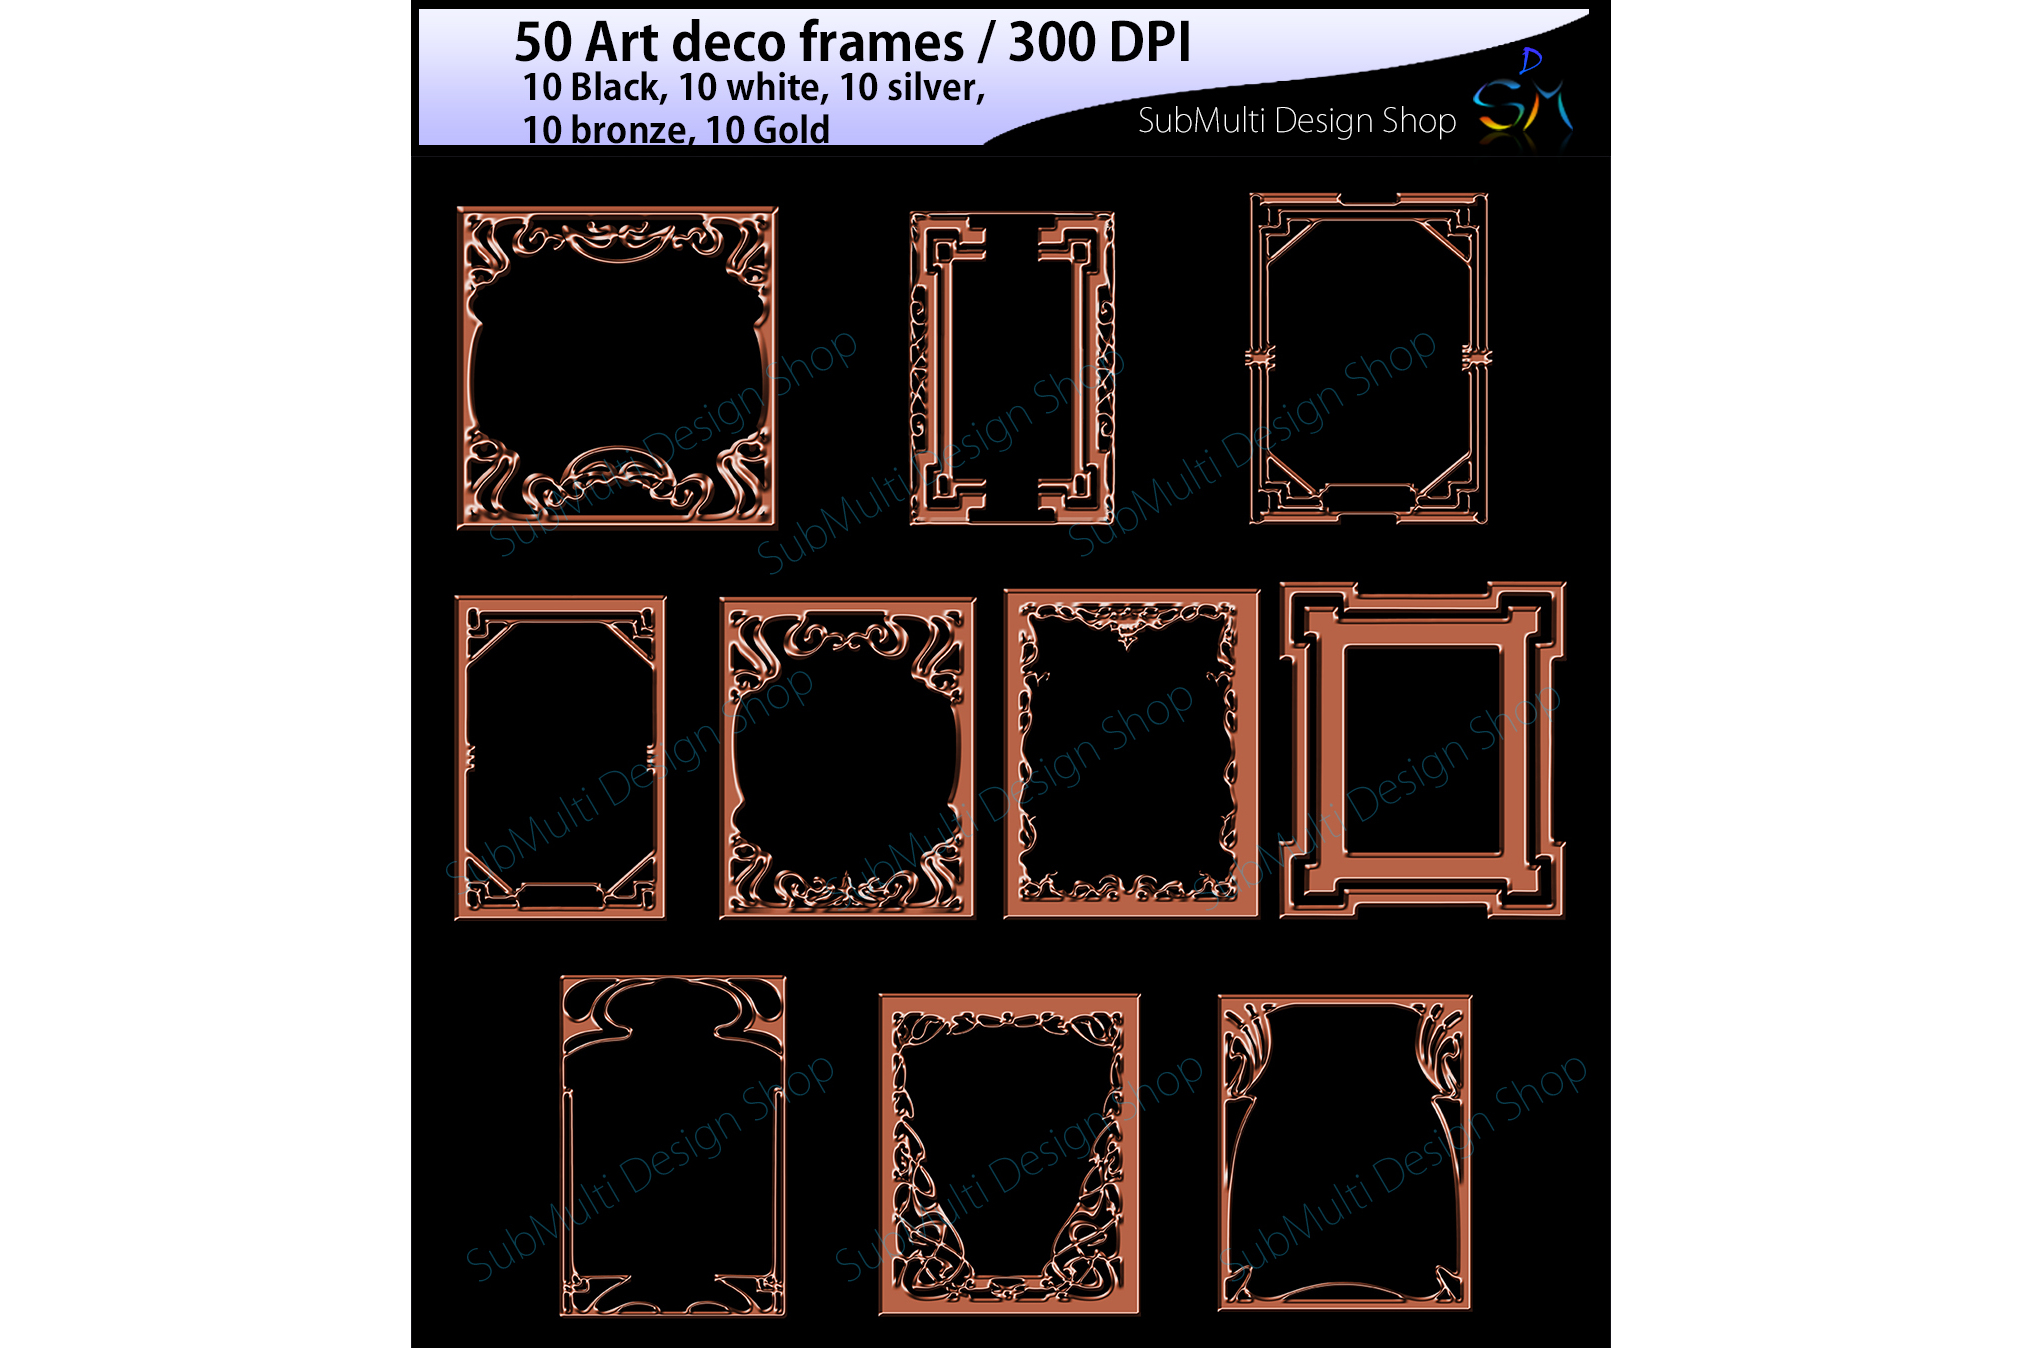 art deco frames / art deco frames clipart / art deco frames silhouette / art deco gold frames / art deco silver frame / High Quality example image 2